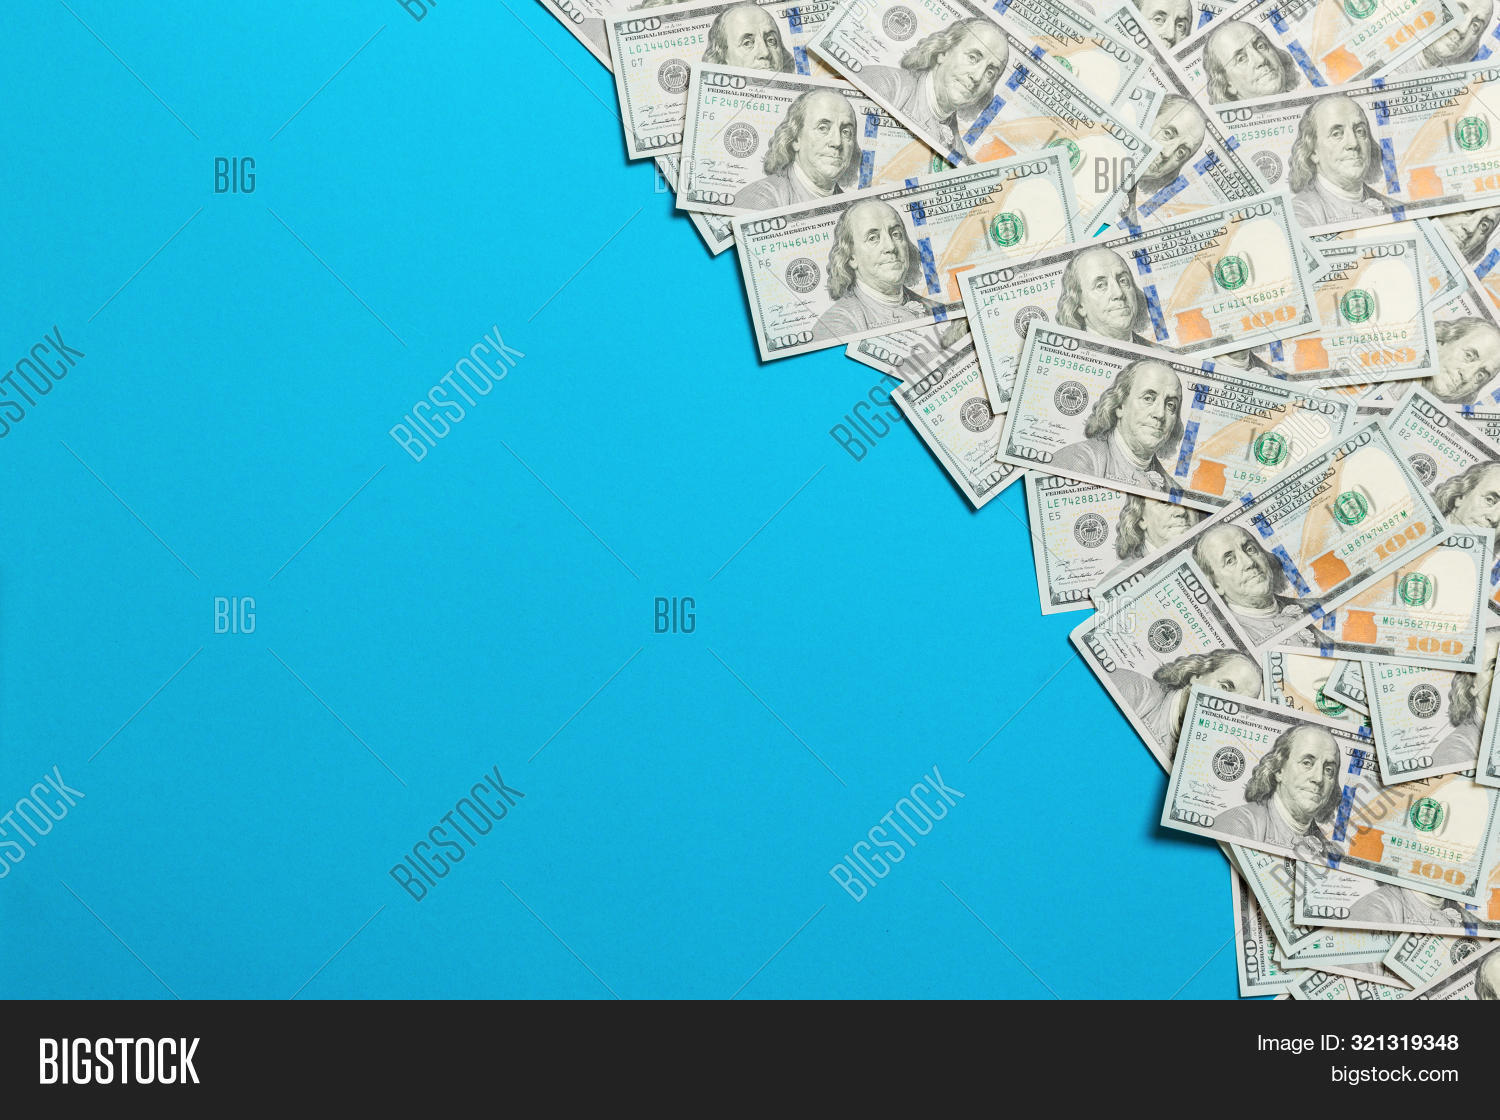 Http Www Bigstockphoto Com Image 321320584 Stock Photo Pack Of One Hundred Dollar Bills In Femle Hands Top View Of Money Saving Concept On Colorful Backgr 2019 09 10 Yearly Https Static2 Bigstockphoto Com 1 2 3 Large1500 321320584 Jpg Pack